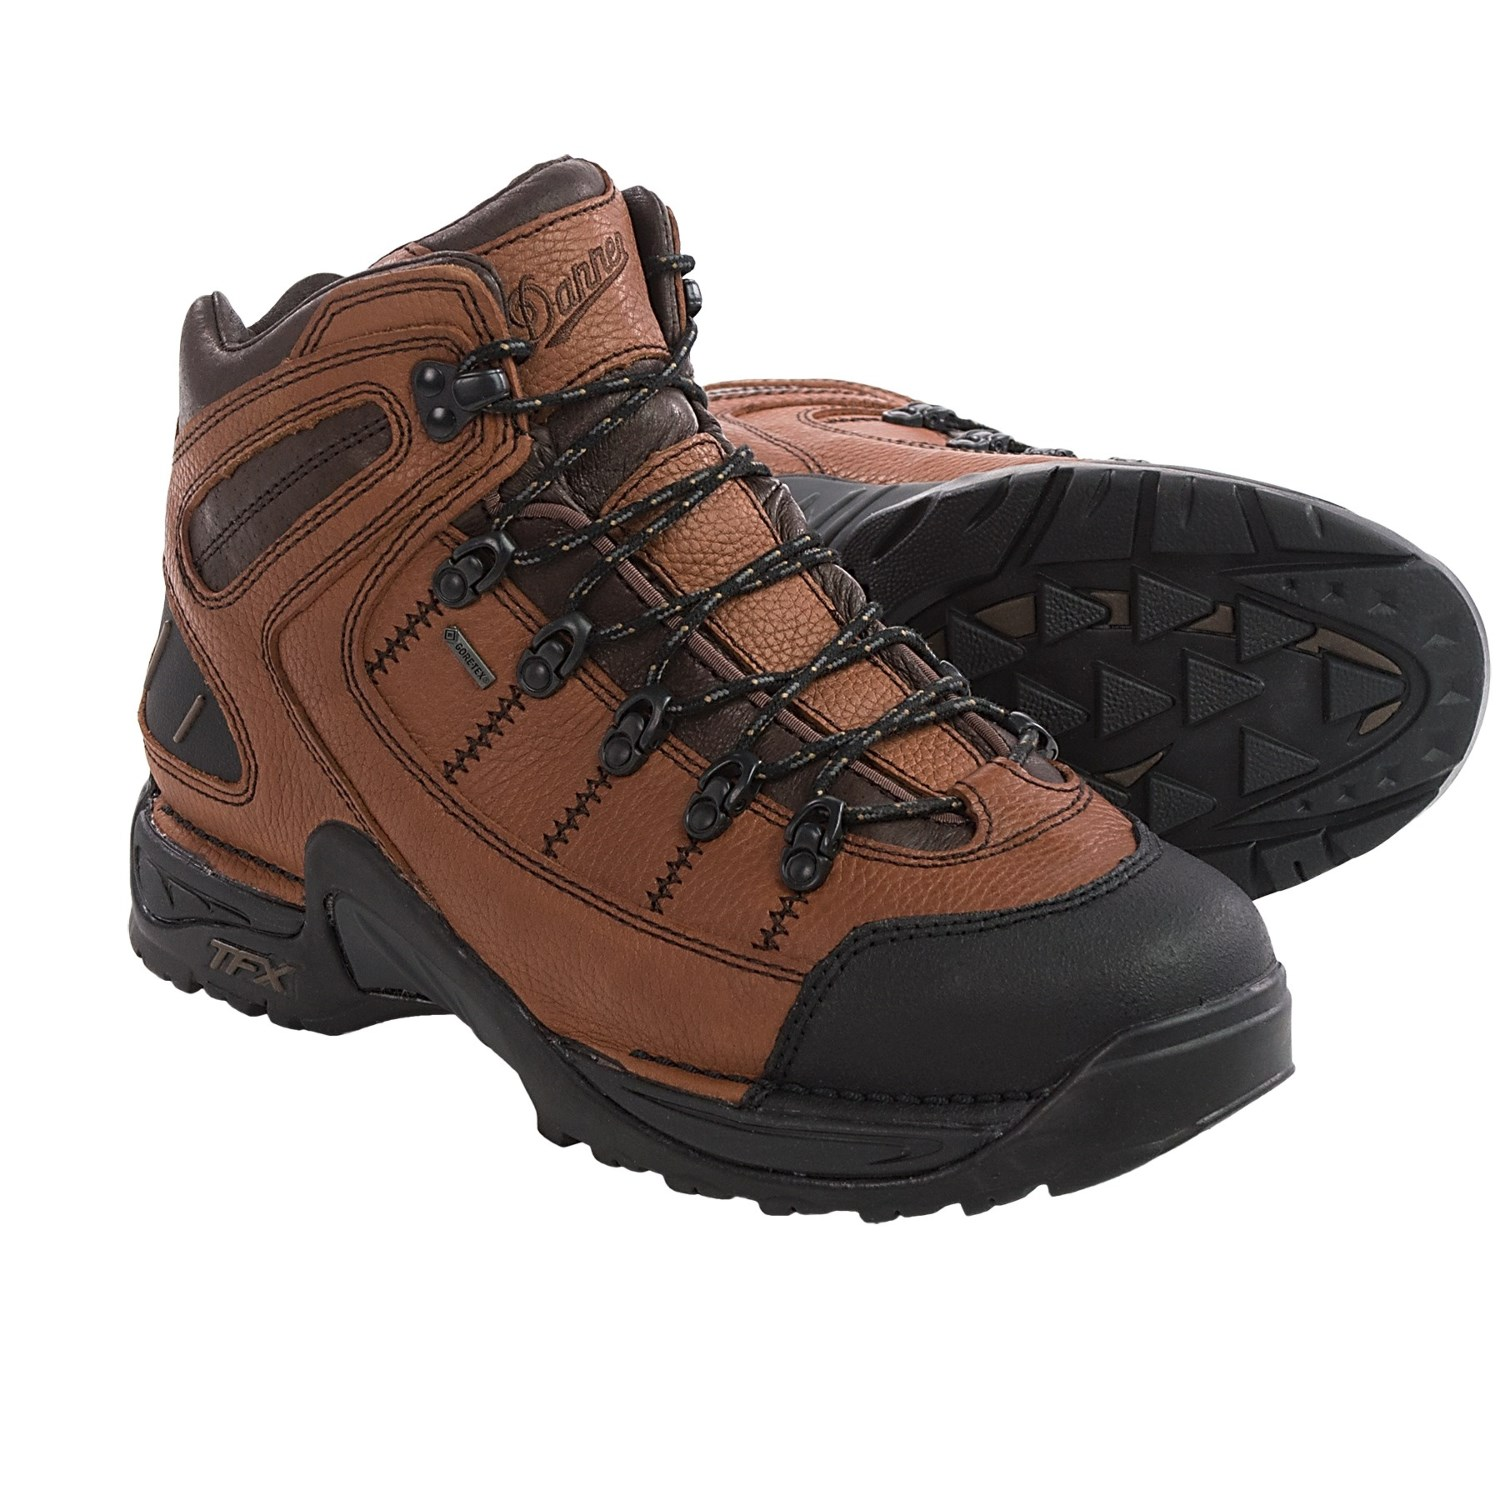 Danner 453 Gore Tex 174 Work Boots For Men Save 21